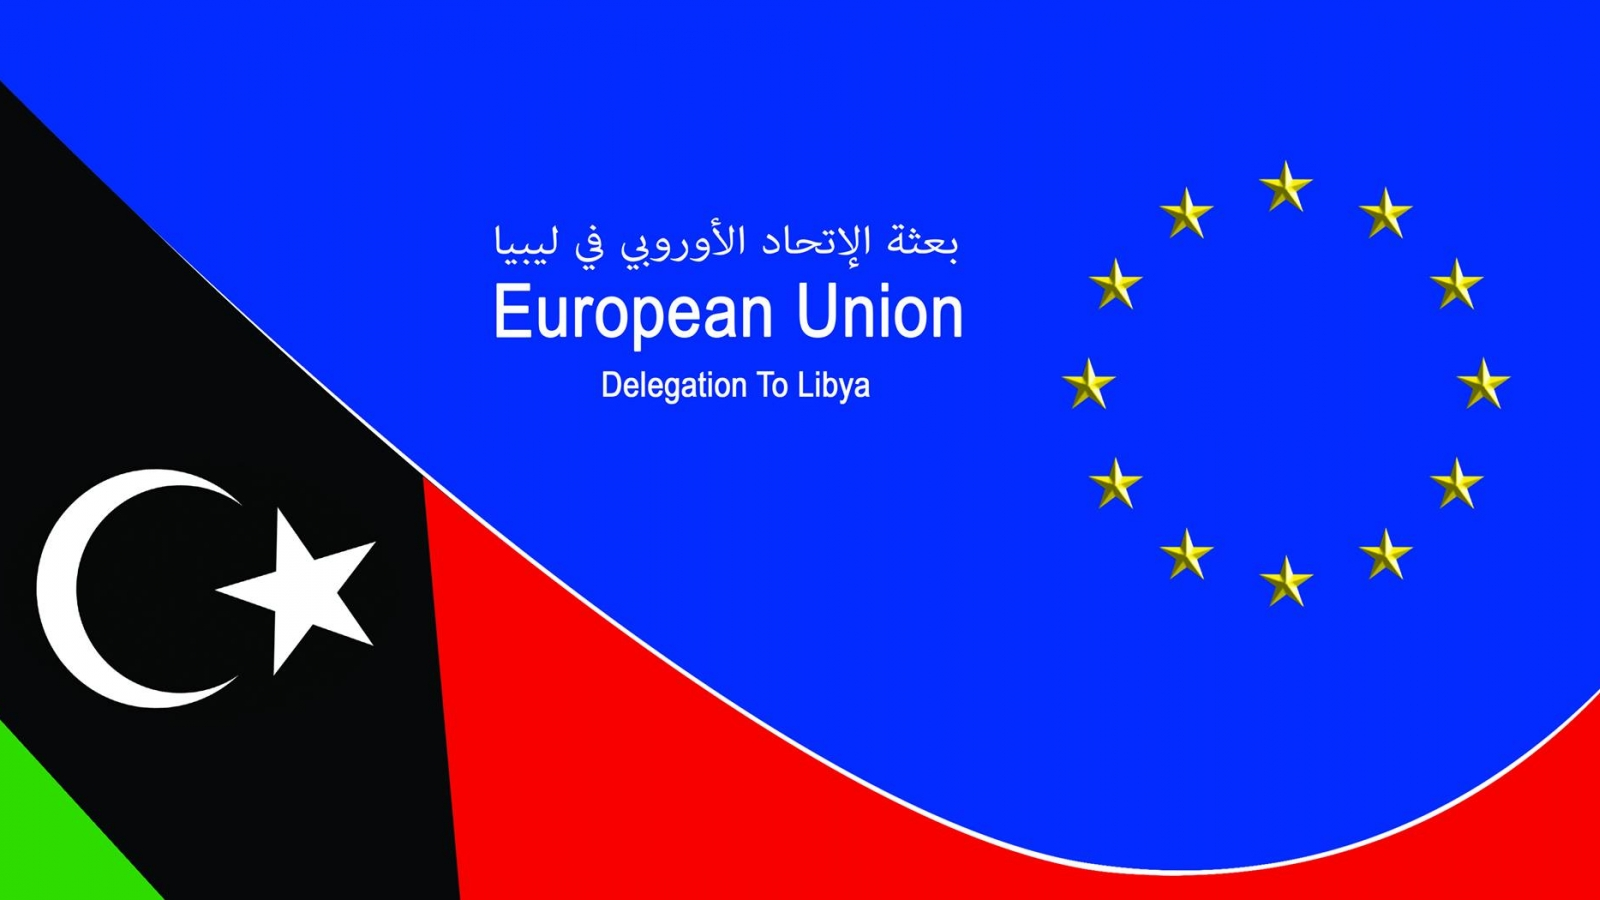 EU Delegation to Libya